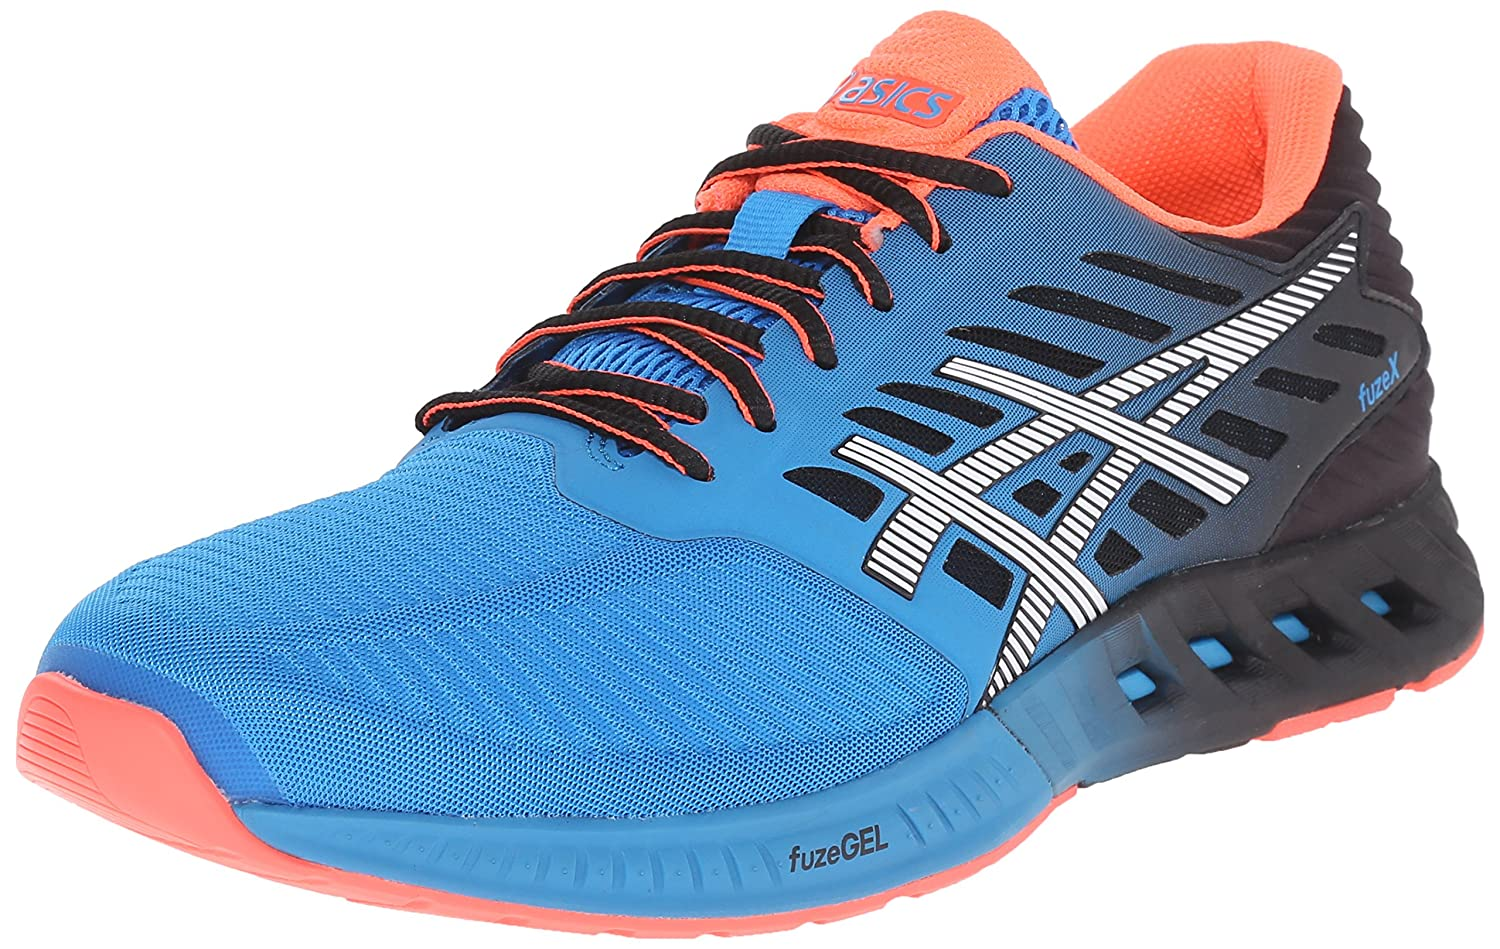 ASICS Men's fuzeX Running Shoe B00YB1HEN0 9.5 D(M) US|Methyl Blue/White/Black